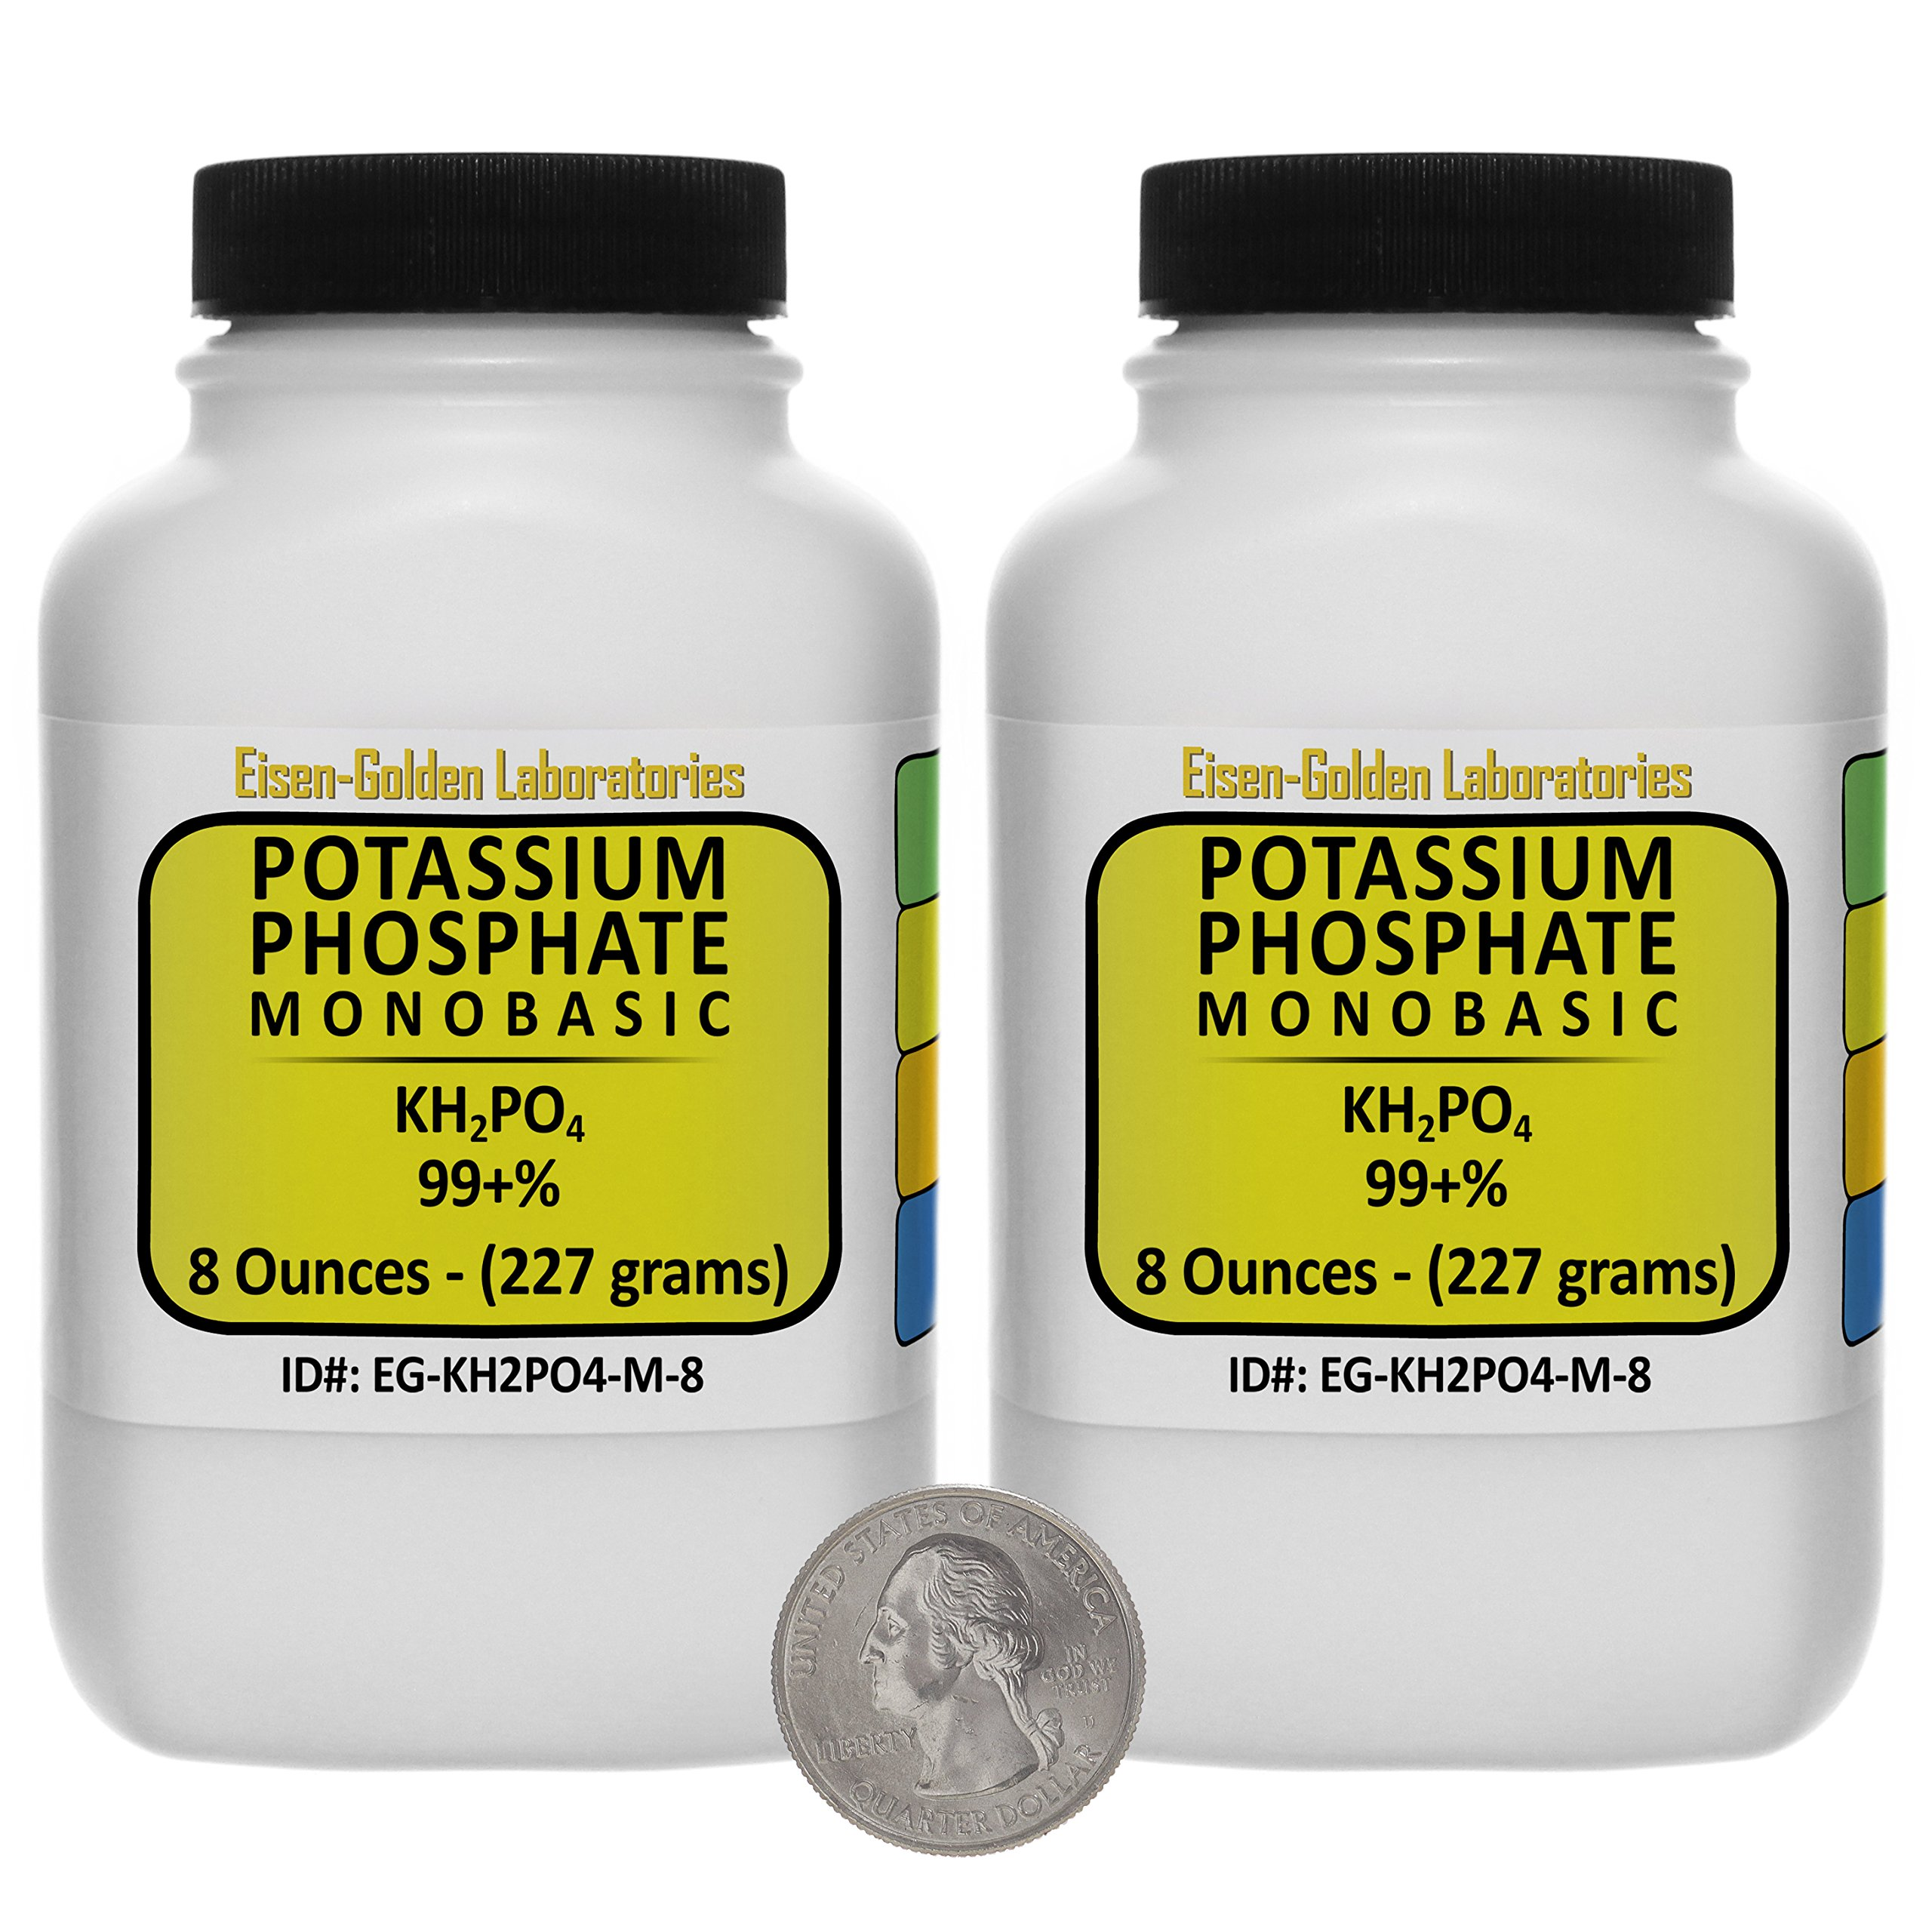 Potassium Phosphate Monobasic [KH2PO4] 99+% Fine Crystals 1 Lb in Two Space-Saver Bottles USA